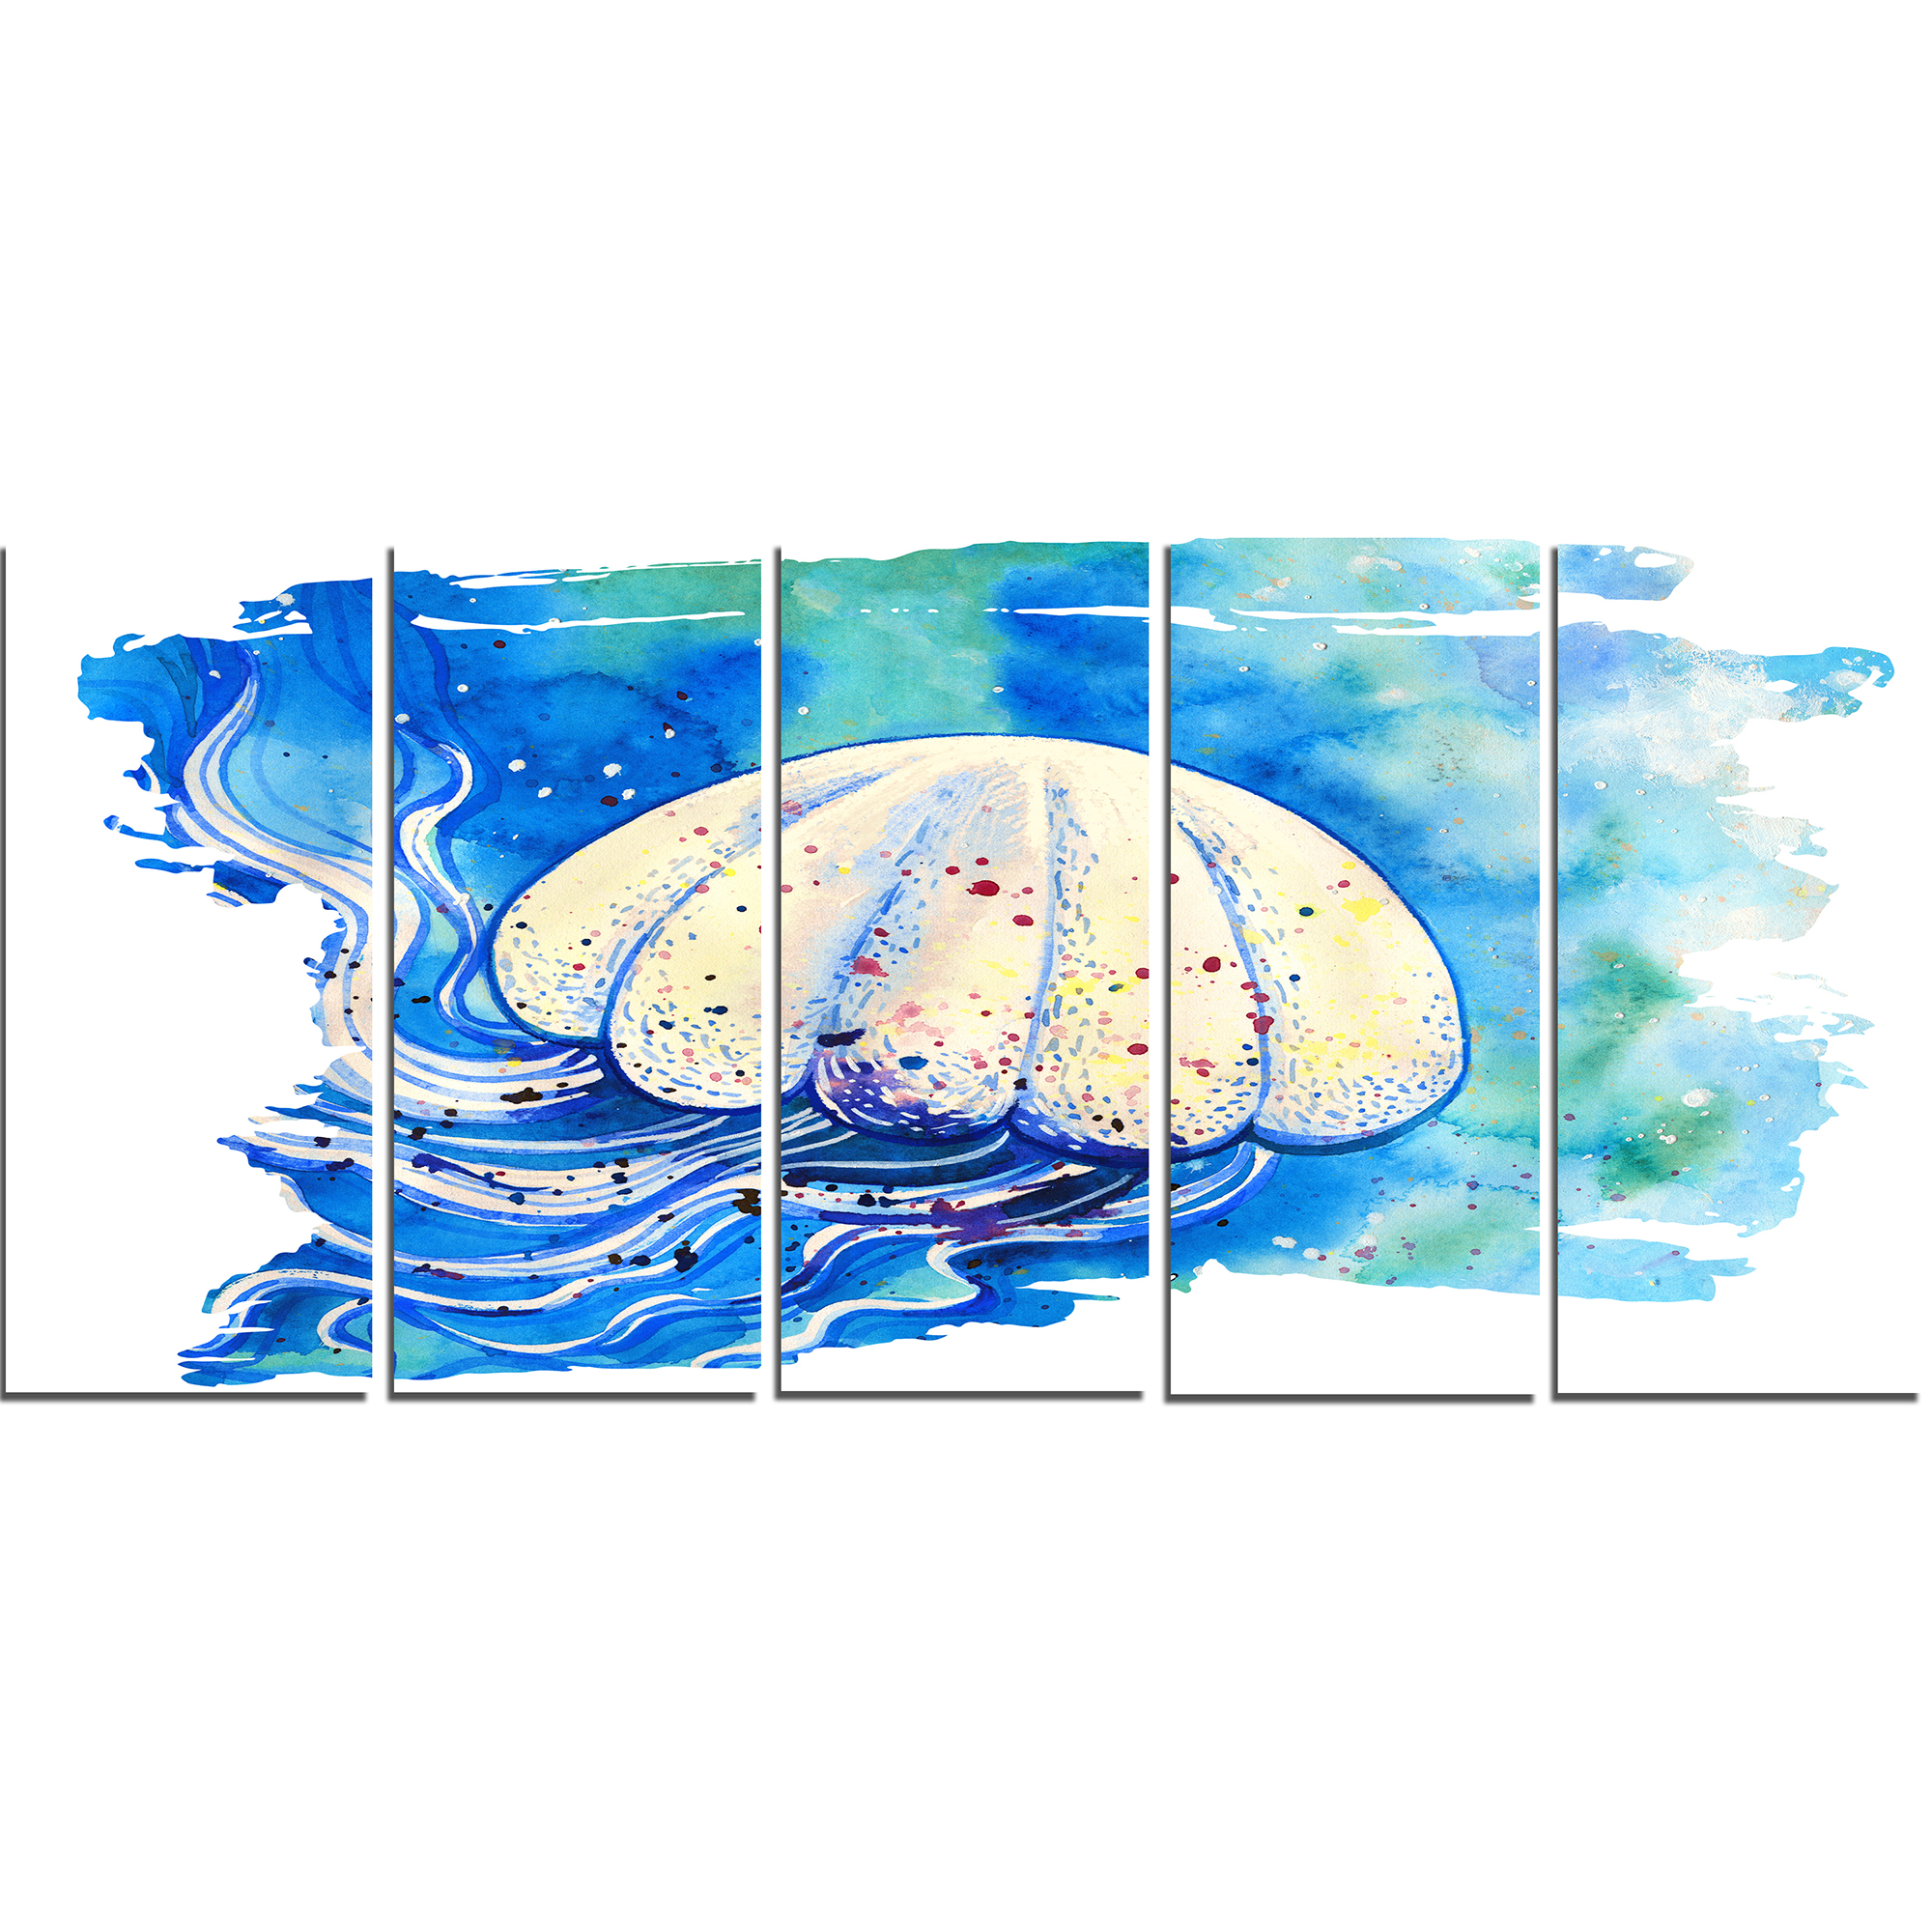 Jellyfish Watercolor Painting - Abstract Canvas Art Print - image 1 de 3